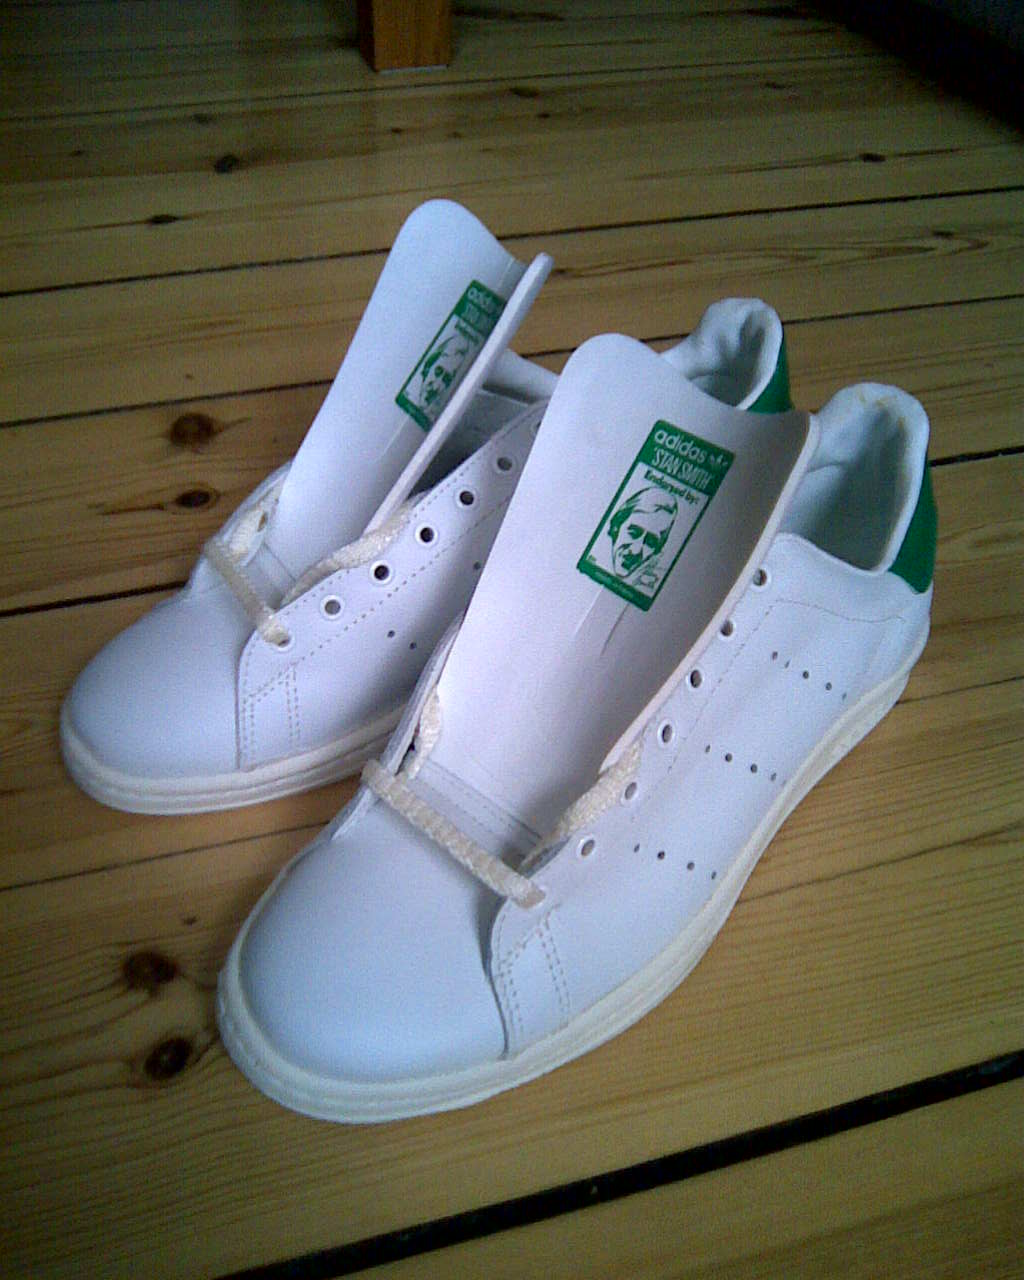 reputable site 7c574 c023a Adidas Stan Smith - Wikipedia